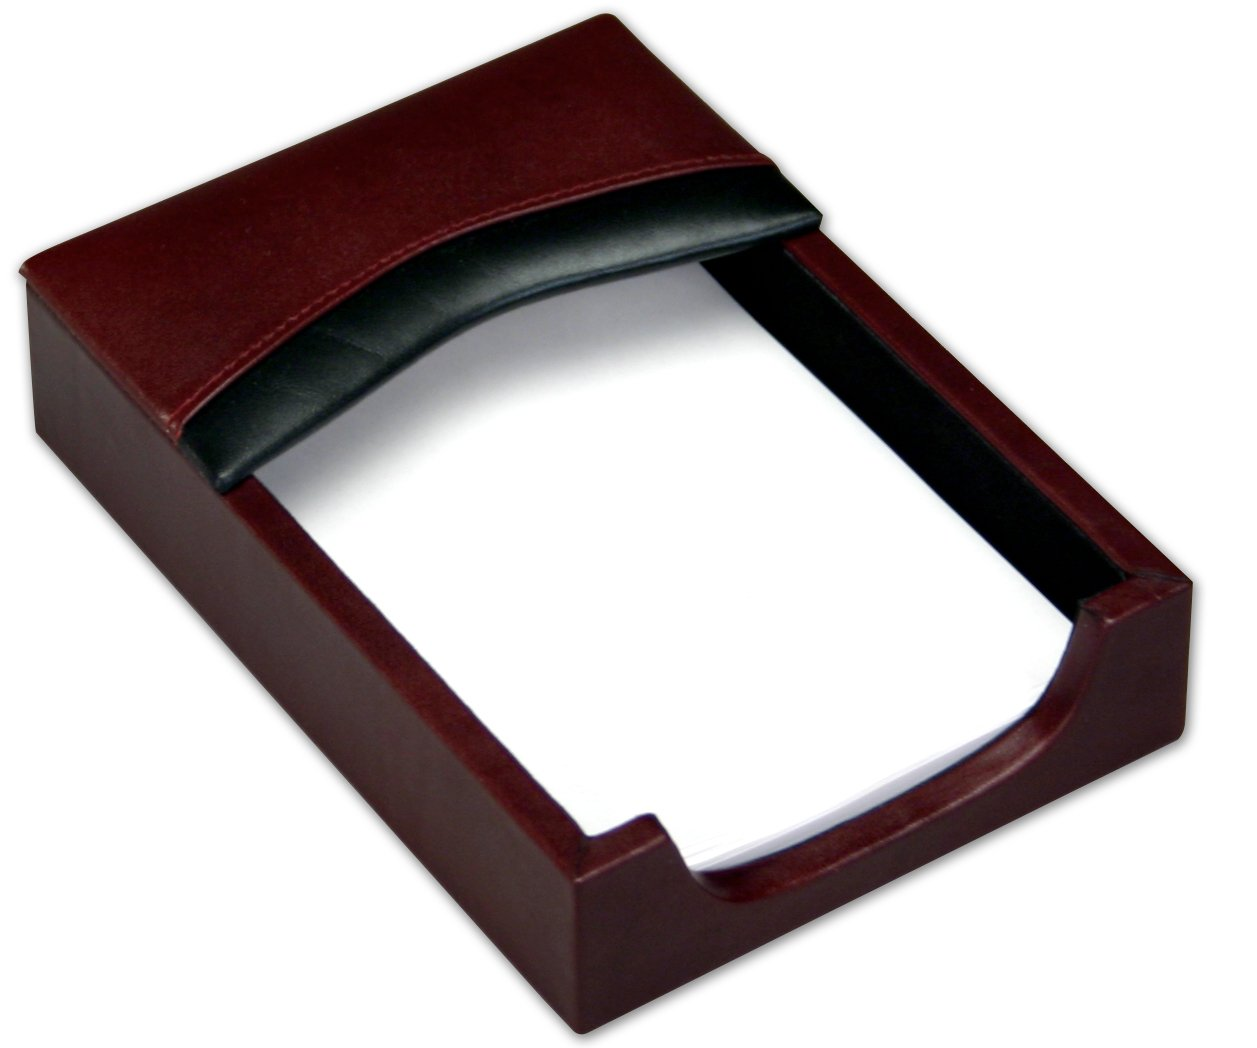 Dacasso Burgundy Leather Memo Holder, 4-Inch by 6-Inch